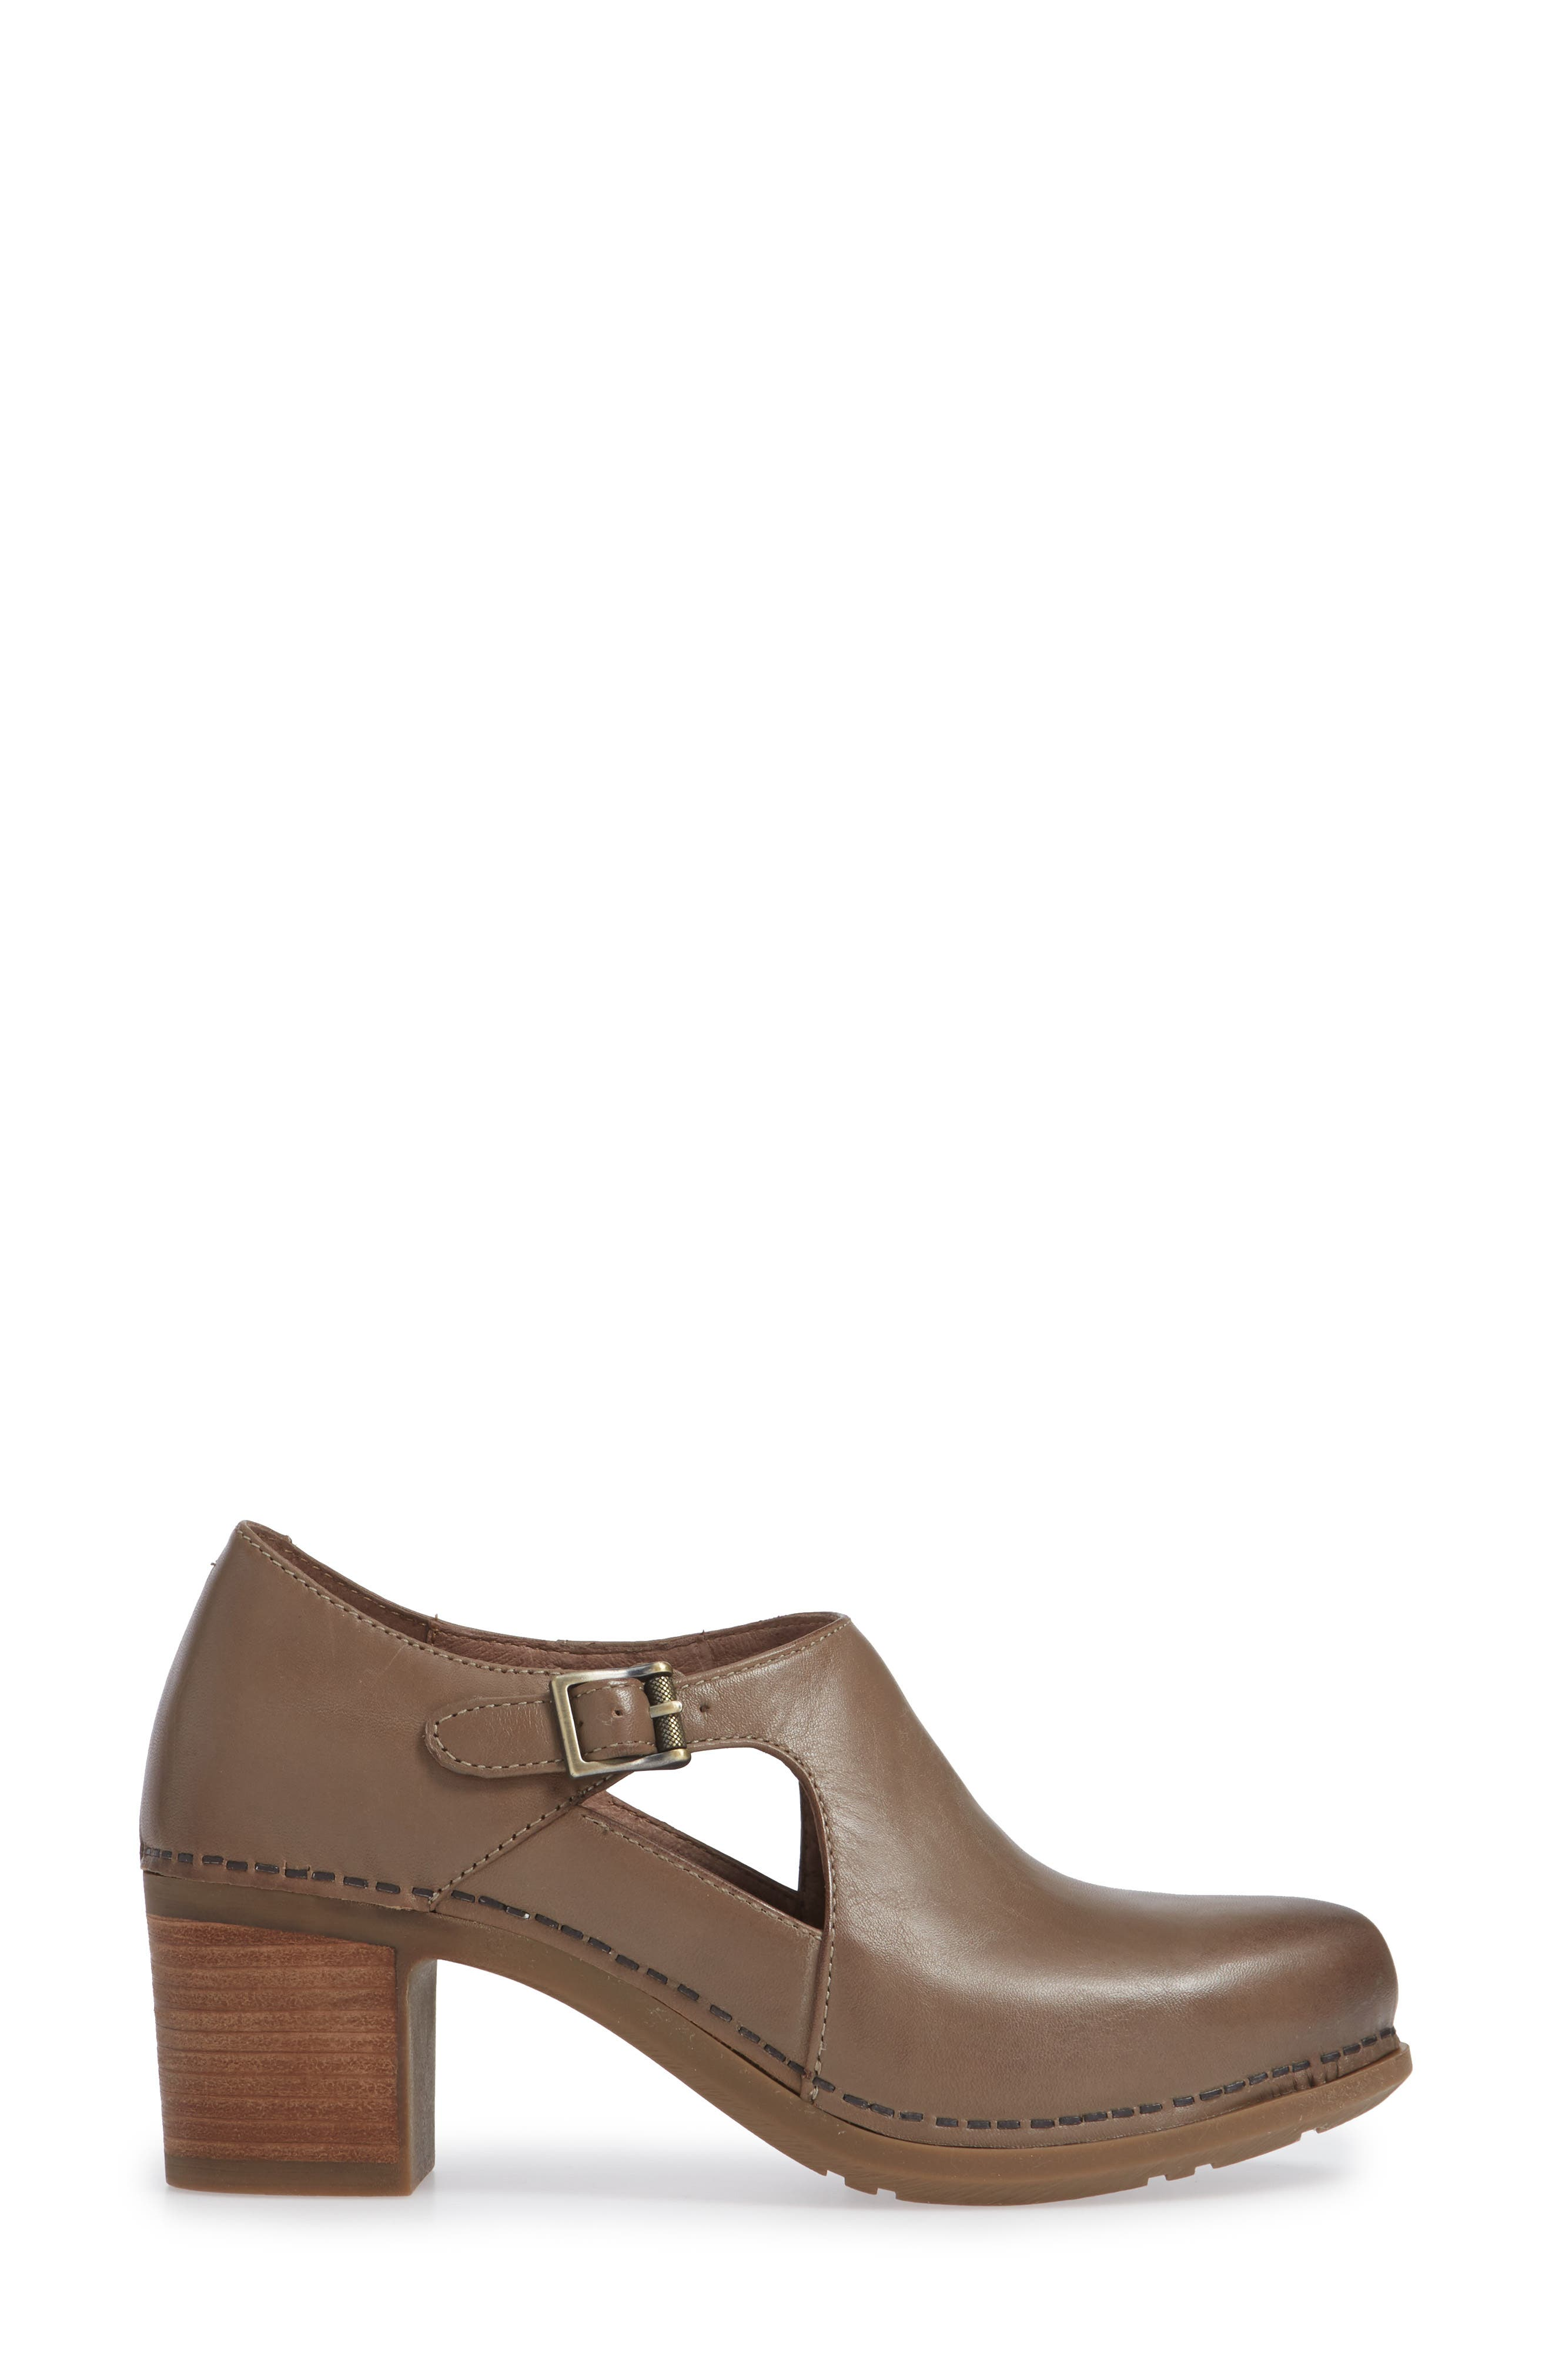 Hollie Bootie,                             Alternate thumbnail 3, color,                             TAUPE BURNISHED LEATHER